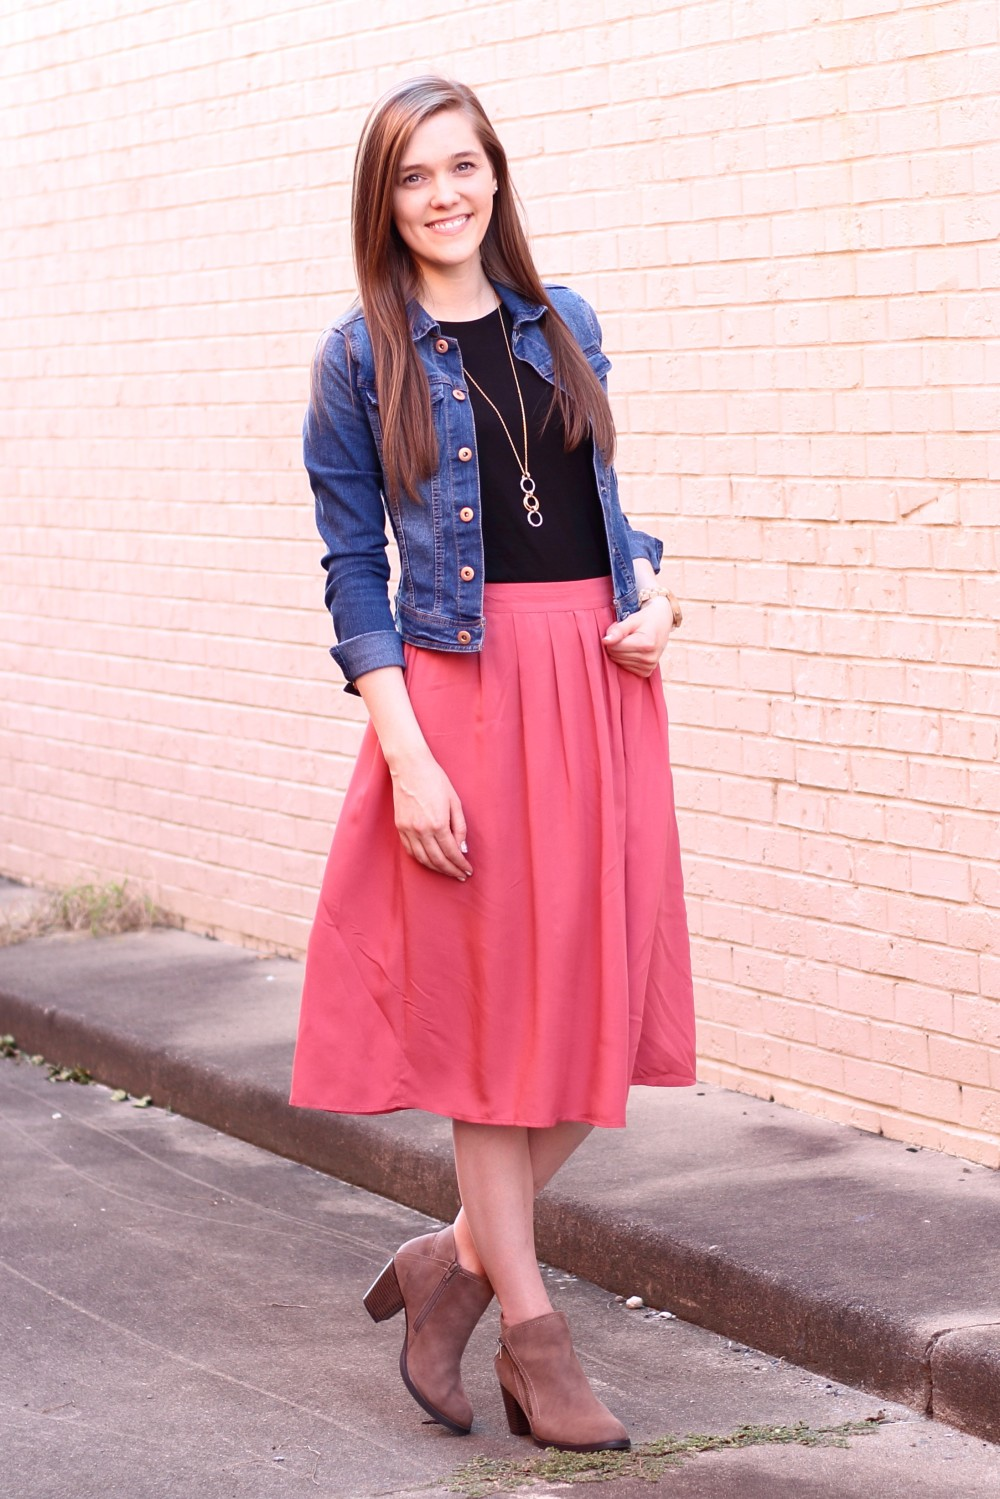 Modest Casual Outfit Idea for Church//Denim Jacket//Black Tee//Red/Orange/Midi Skirt//Ankle Boots//Fall Style Inspiration//Cute//Modern//Simple//Pretty//Classy